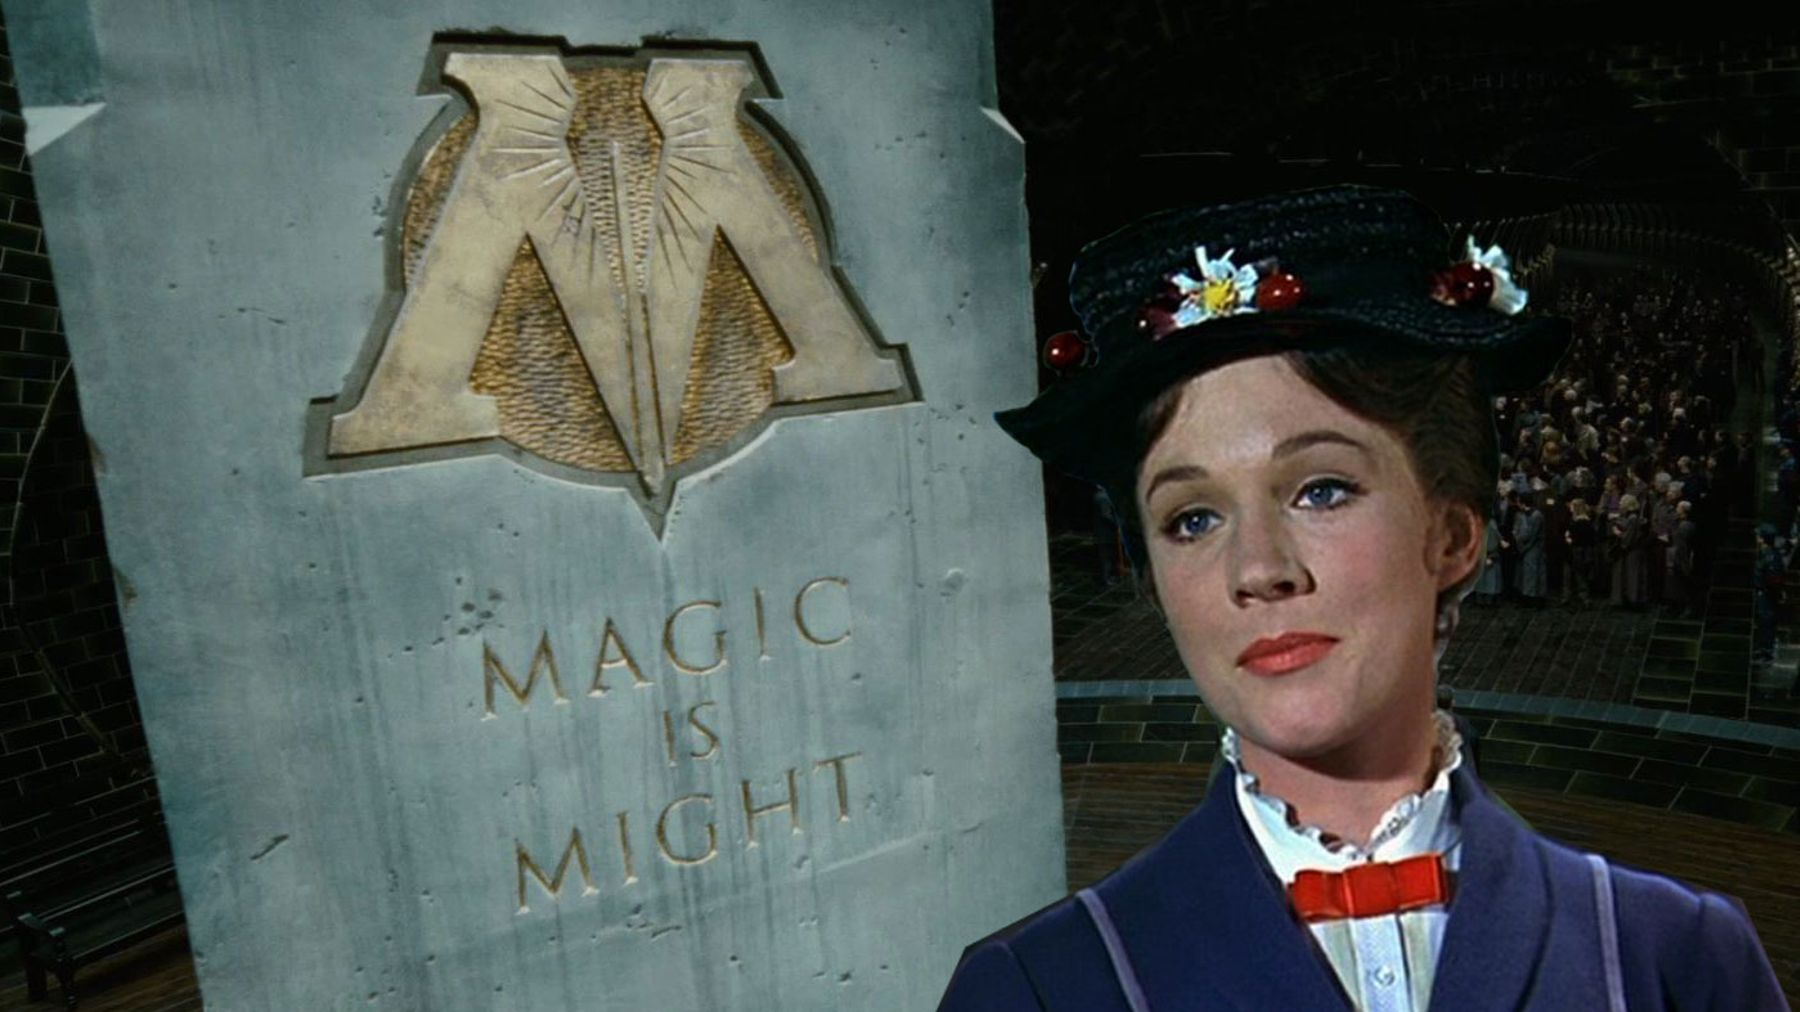 Harry Potter fans, Mary Poppins apparently worked for The Ministry